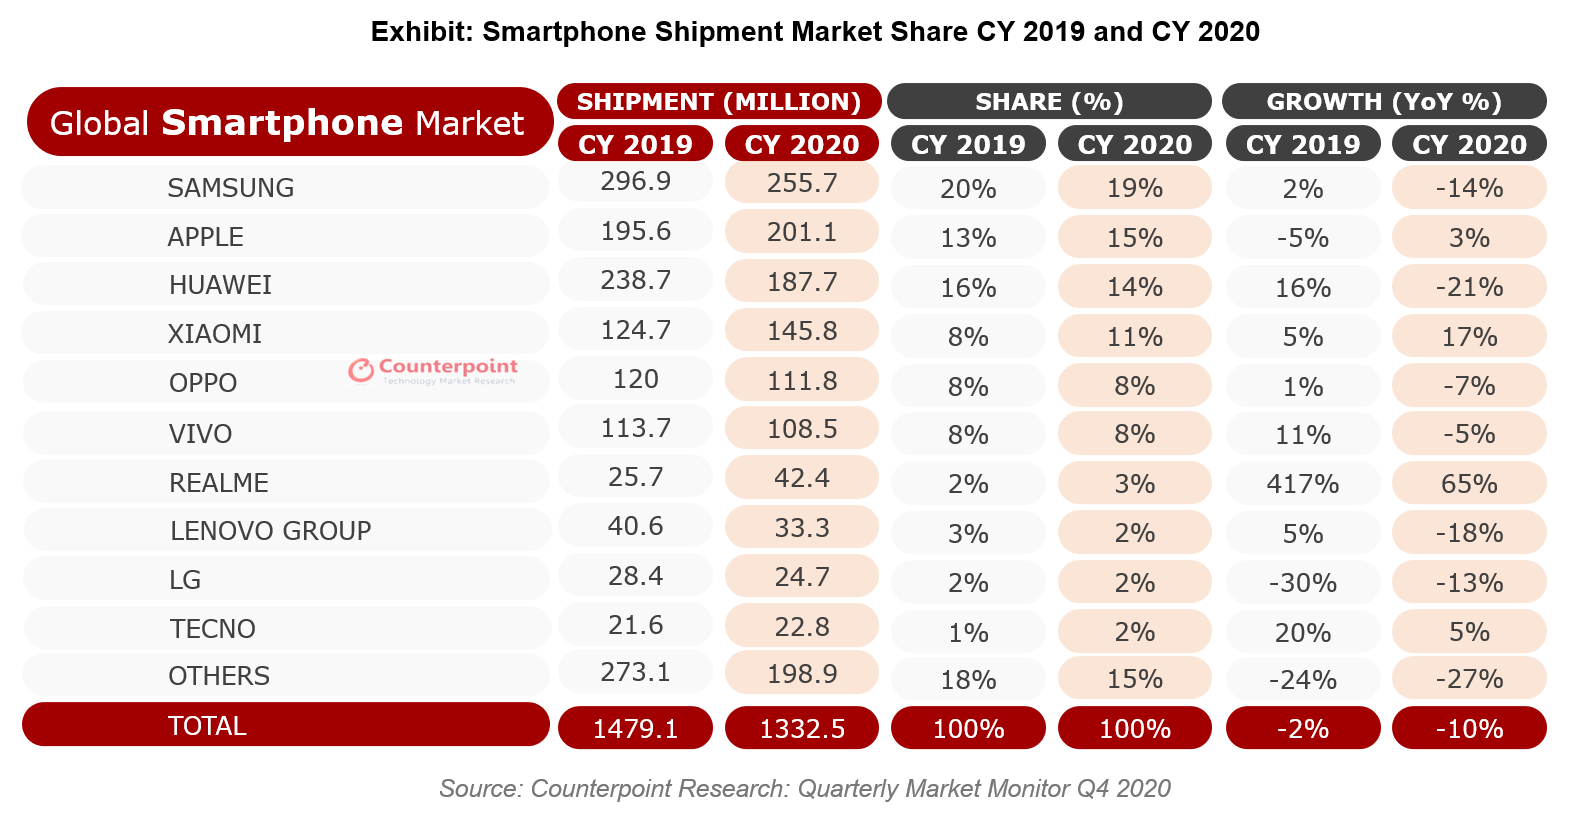 Counterpoint Research: Global Smartphone Shipment Market Share CY 2019 and CY 2020